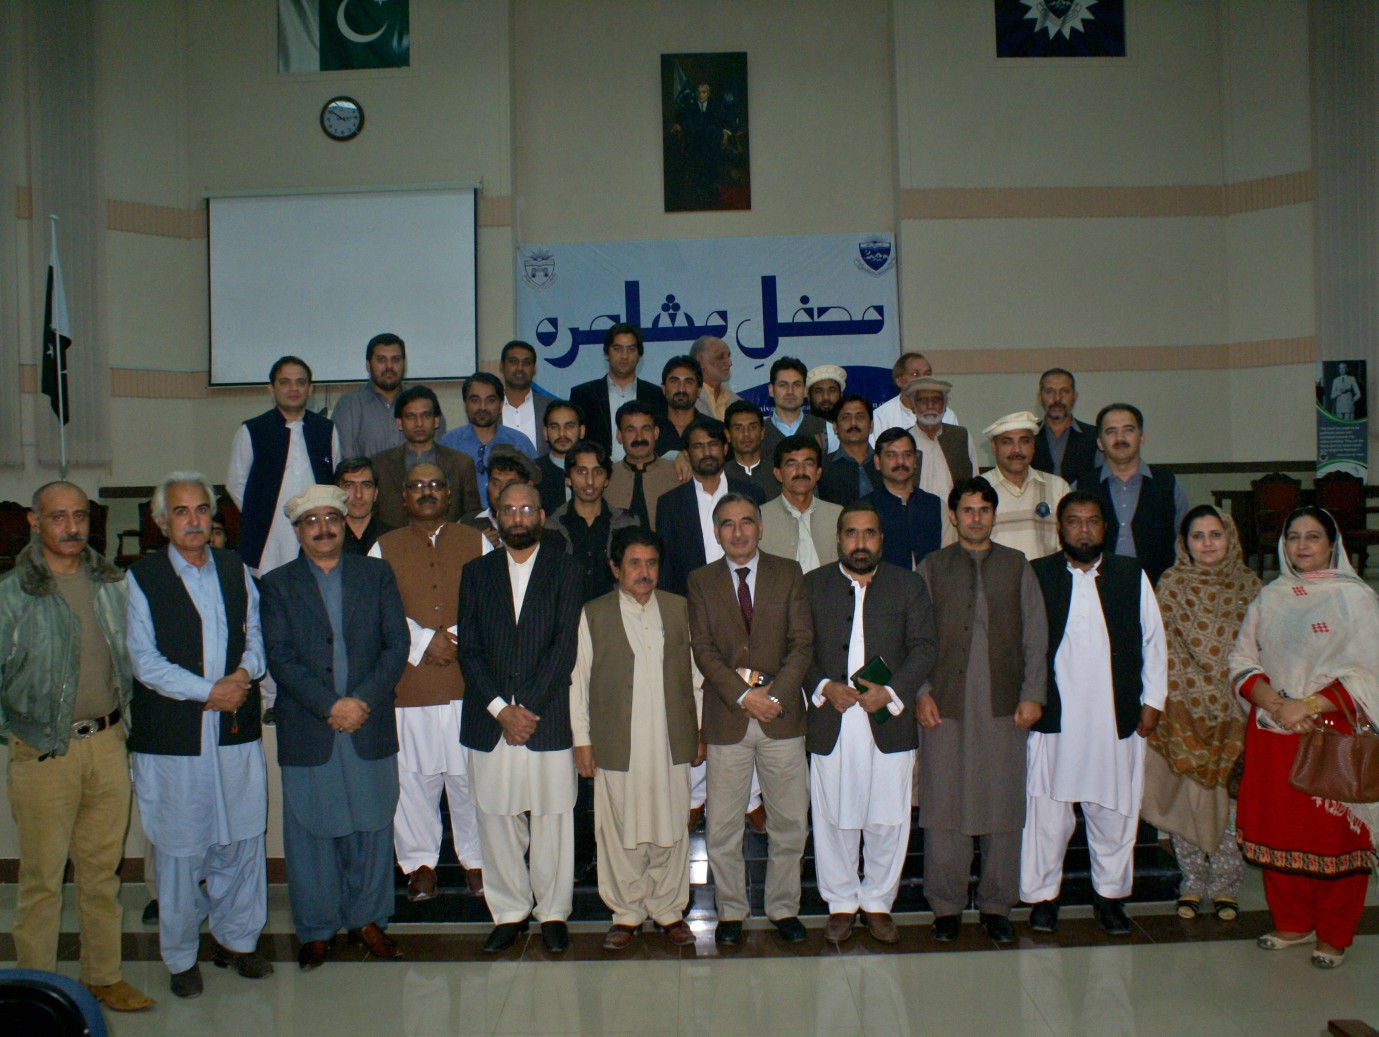 Vice Chancellor UoP Prof. Dr. Muhammad Rasul Jan in group photo with particpants of Pashto Mushaira held at the University of Peshawar